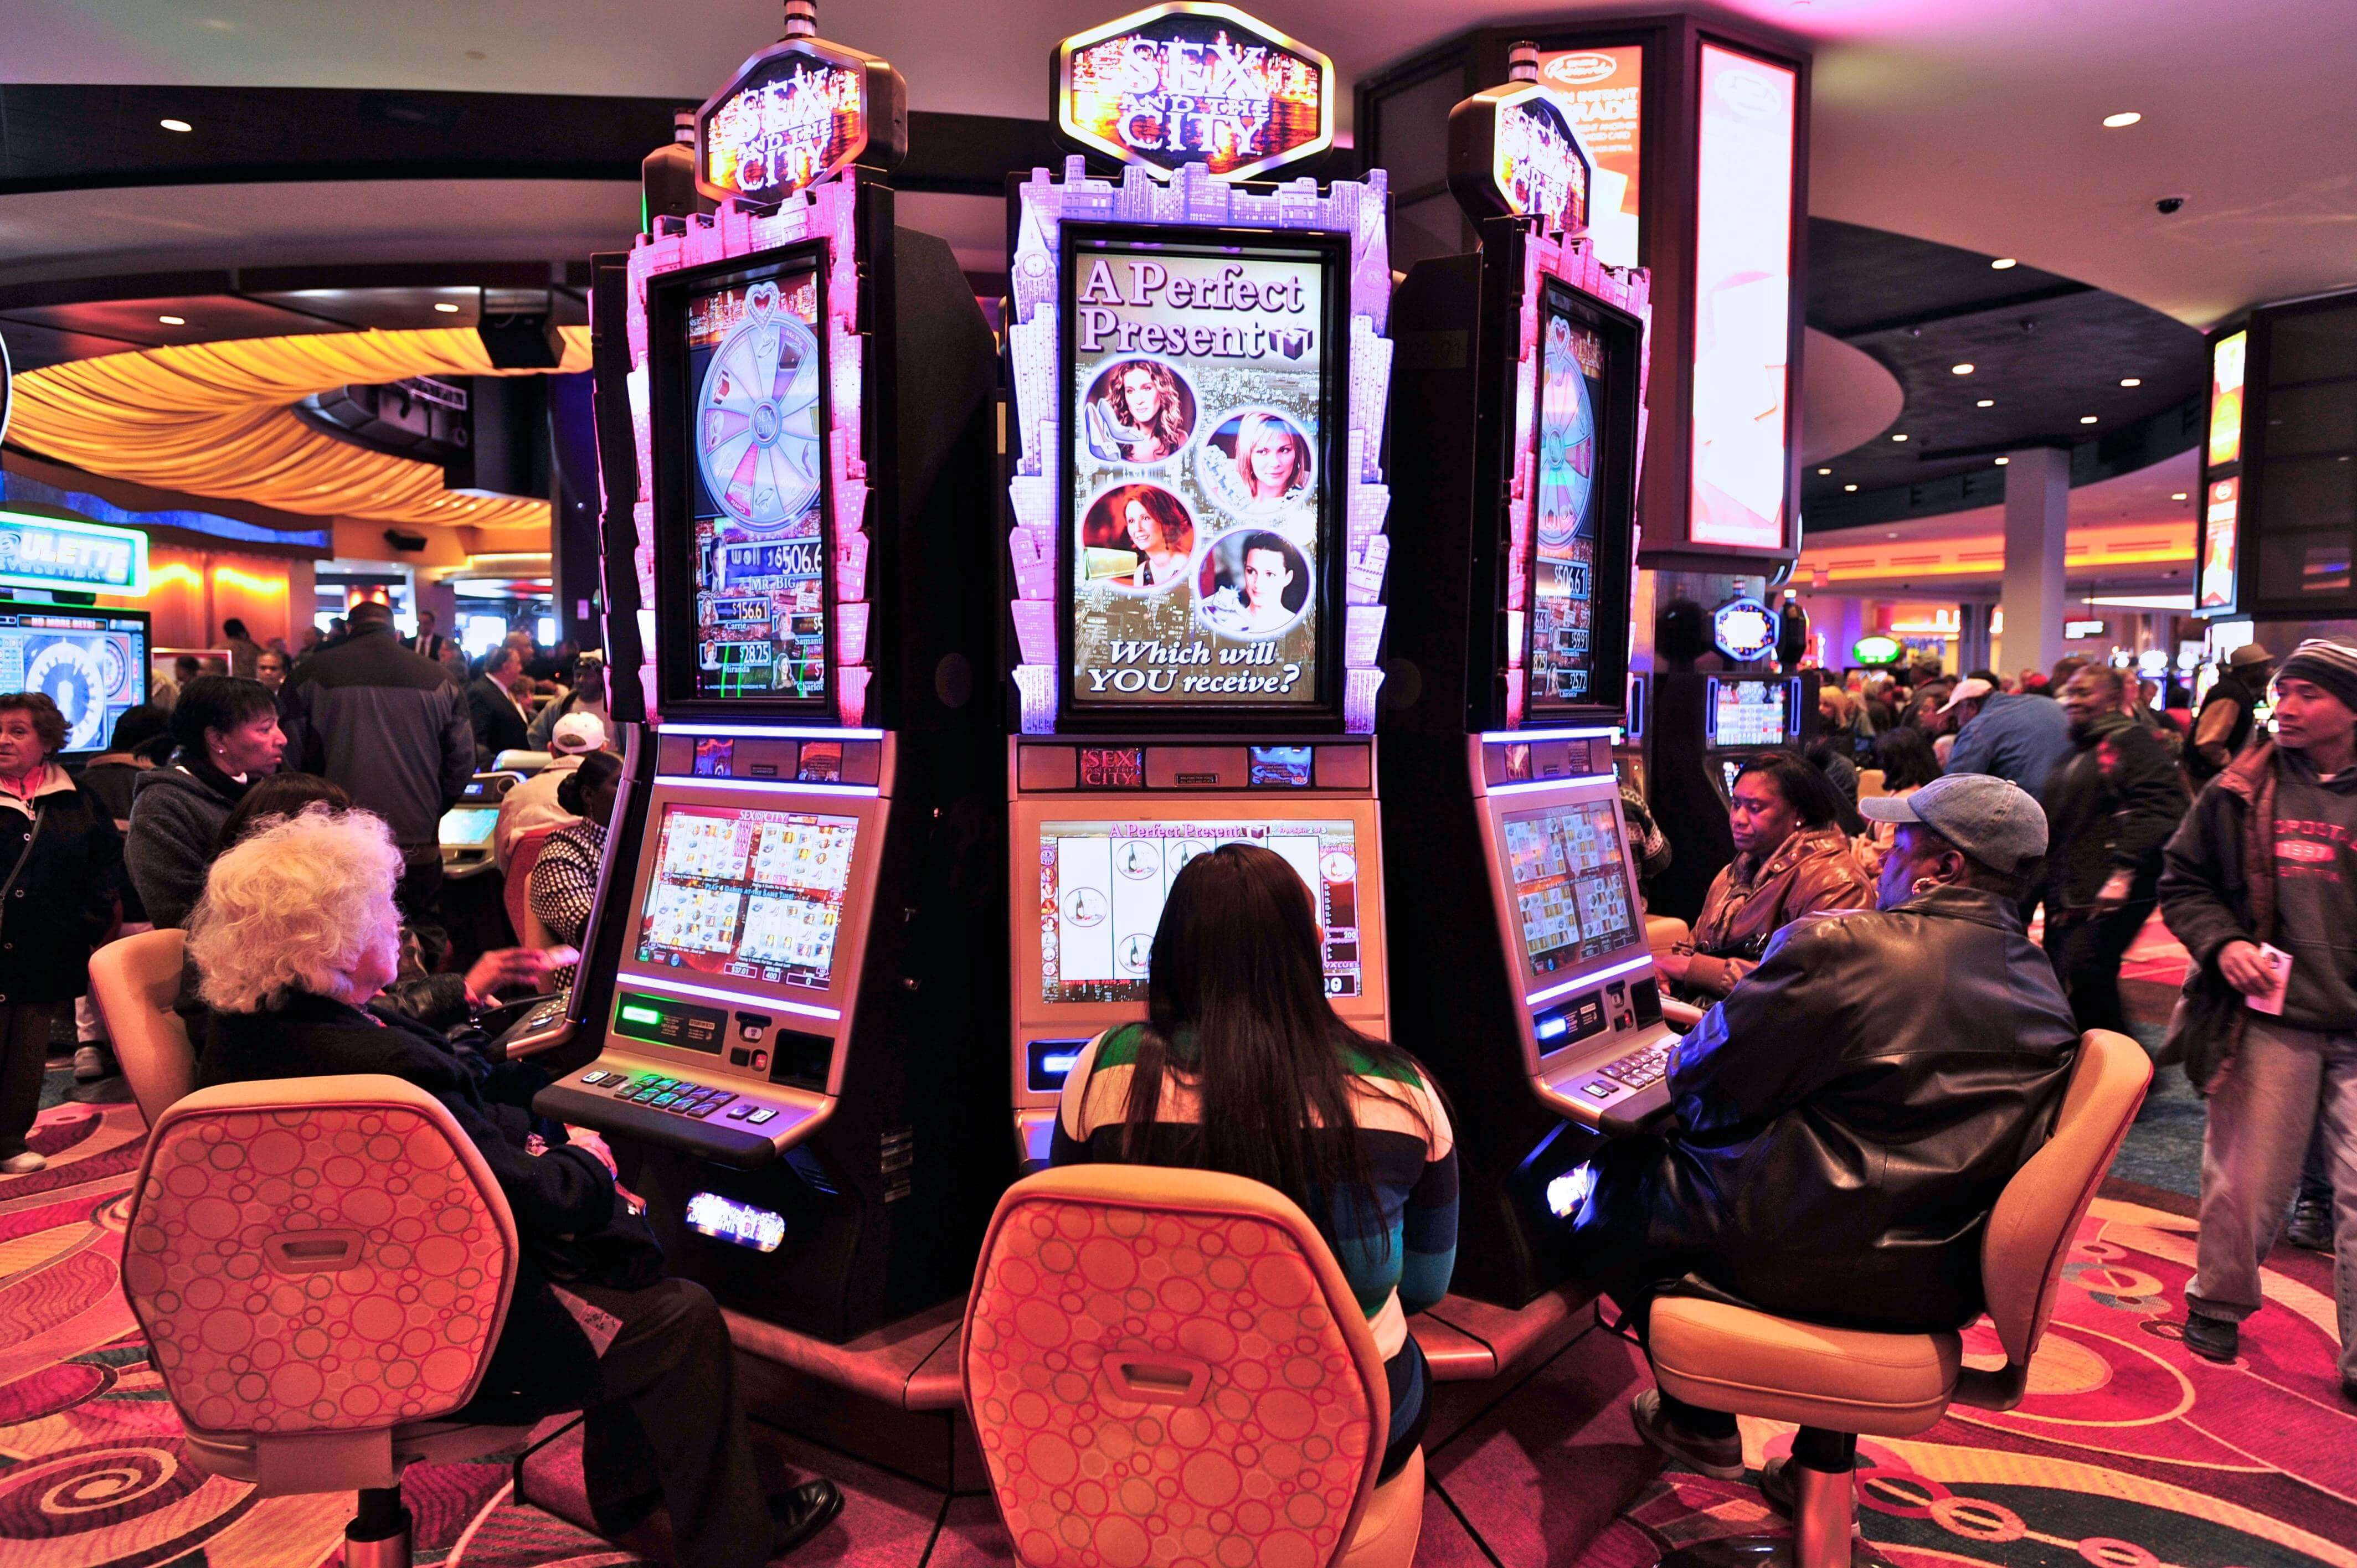 Each and every casino games developer keeps room for video slots, because without them the business no life at all.The most prominent developers to have launched the biggest number of popular video slots online are Microgaming, Playtech, NetEnt, Rival and many other great names.